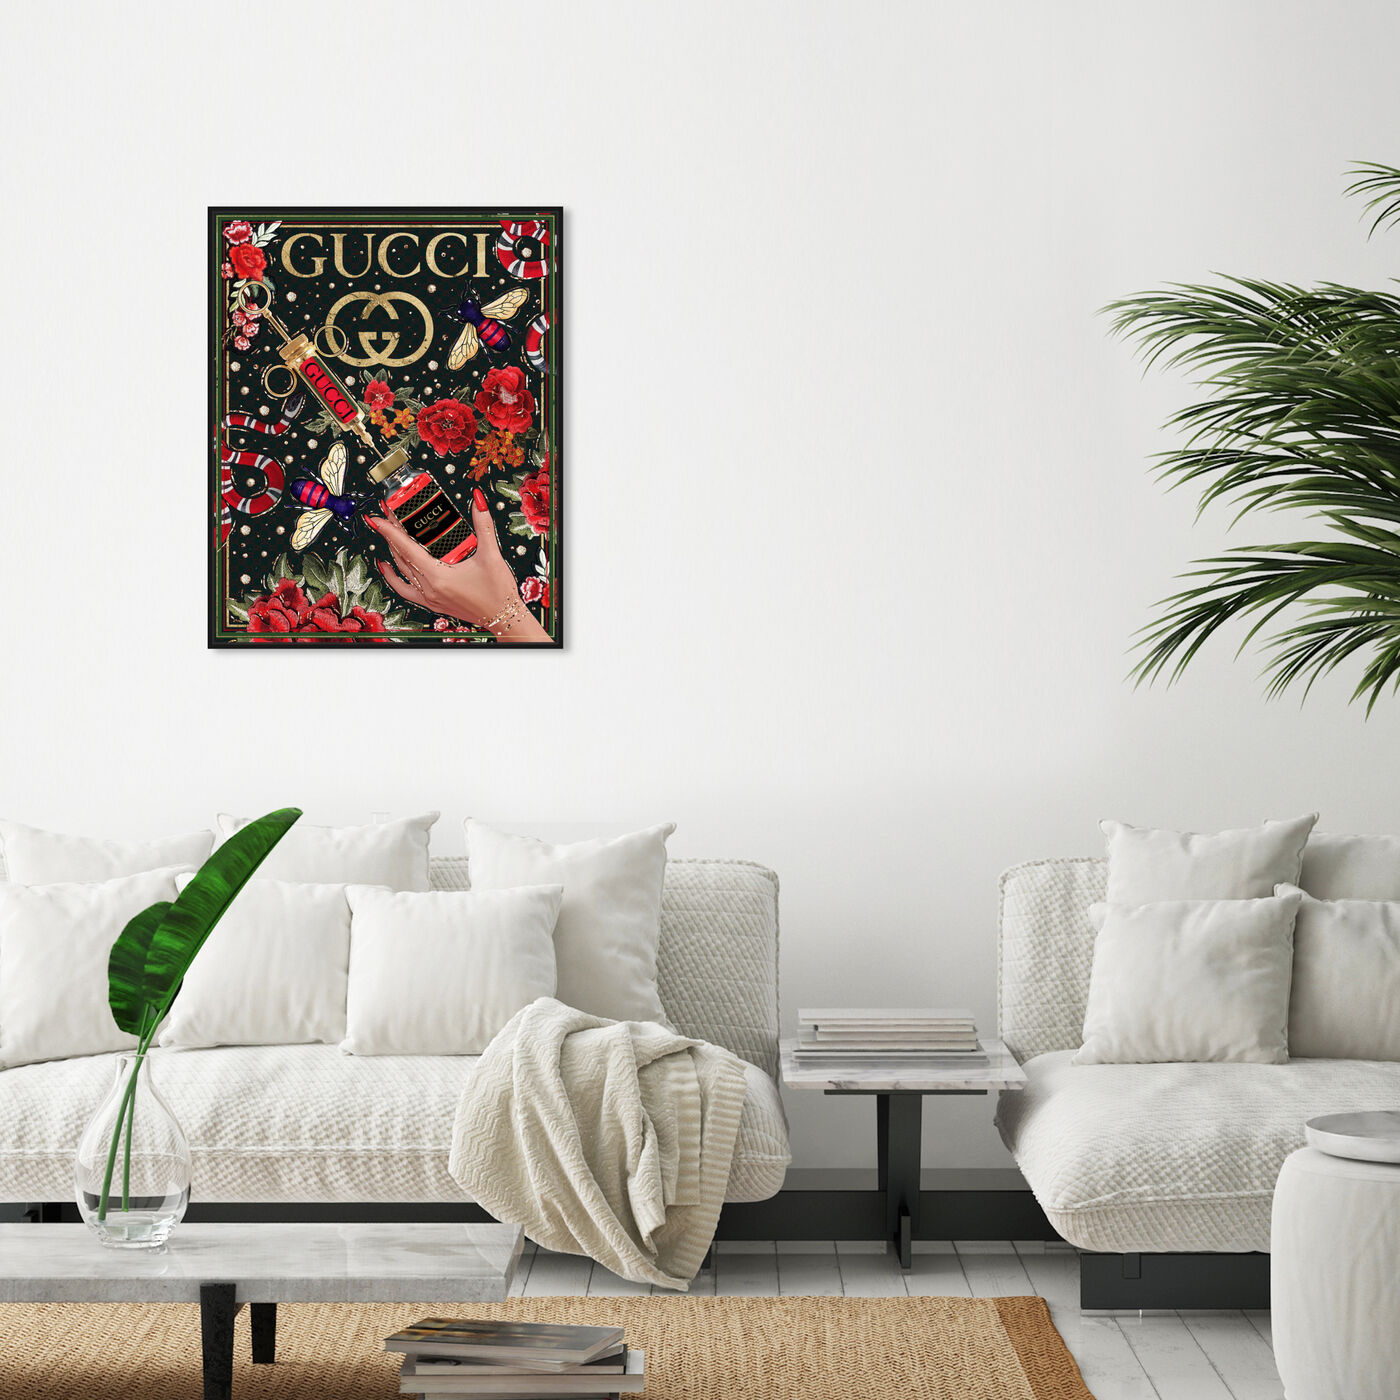 Hanging view of Red Still Life Injection featuring fashion and glam and fashion lifestyle art.